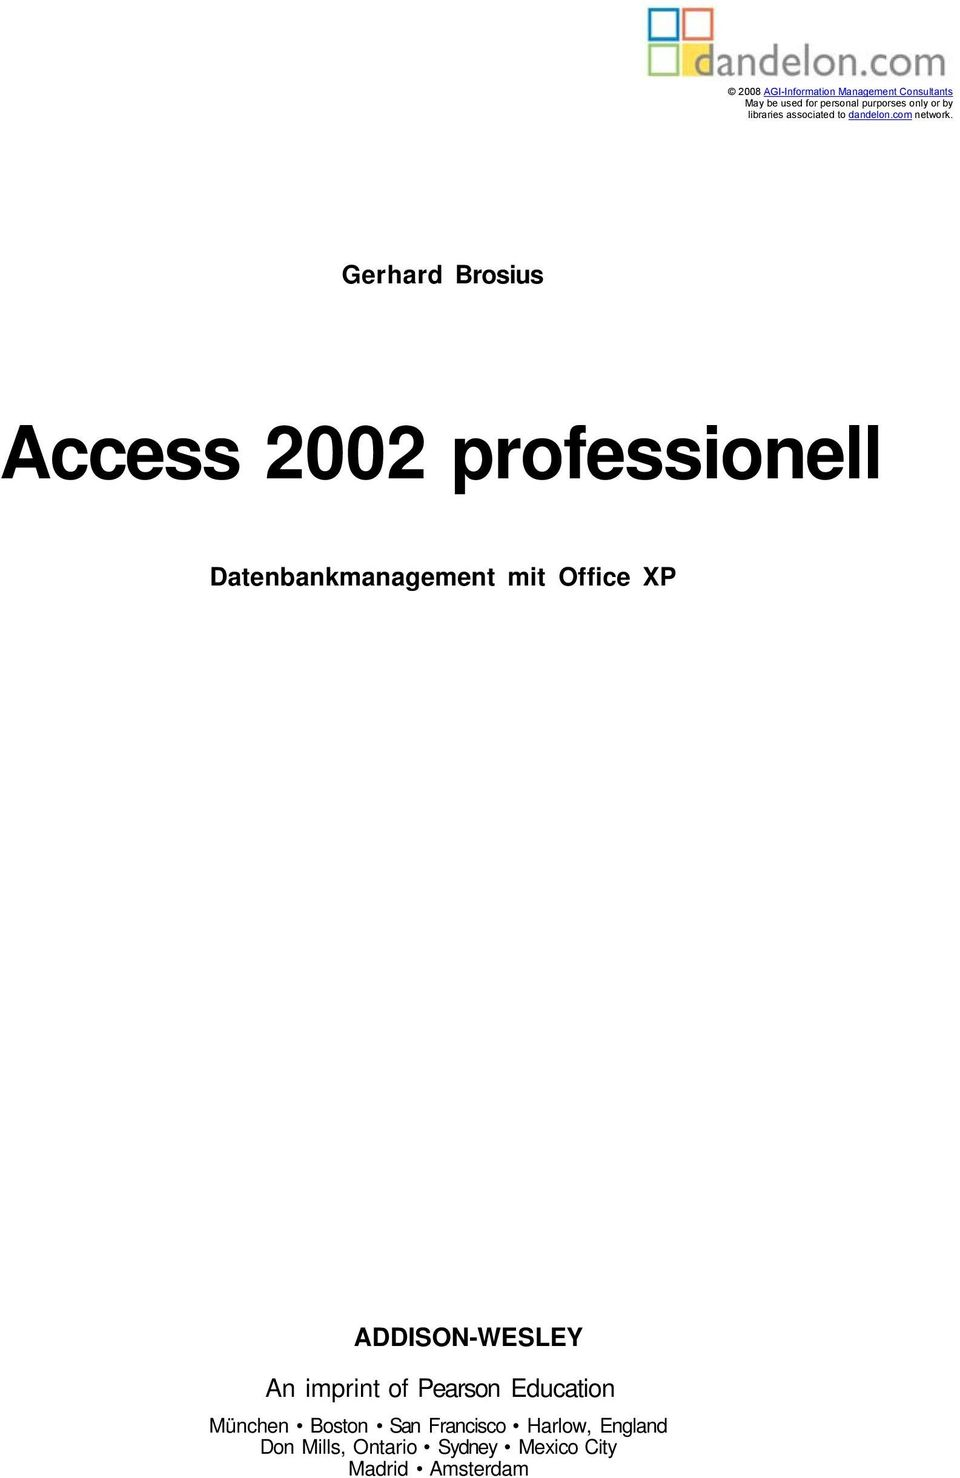 Gerhard Brosius Access 2002 professionell Datenbankmanagement mit Office XP